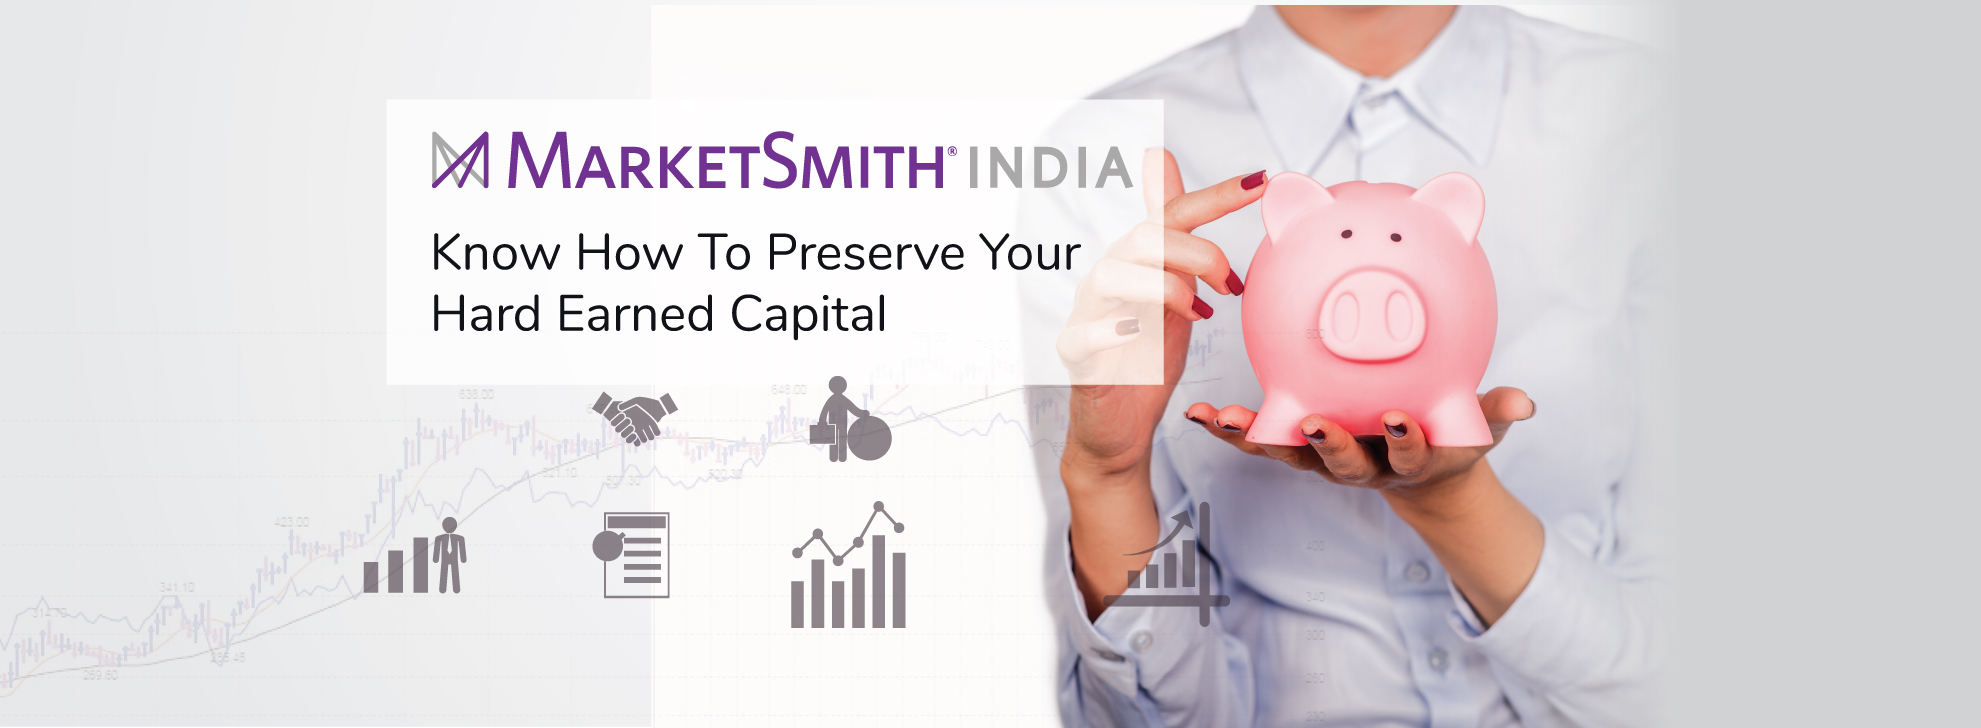 MarketAmith India_Know How to Preserve Your Hard Earned Capital